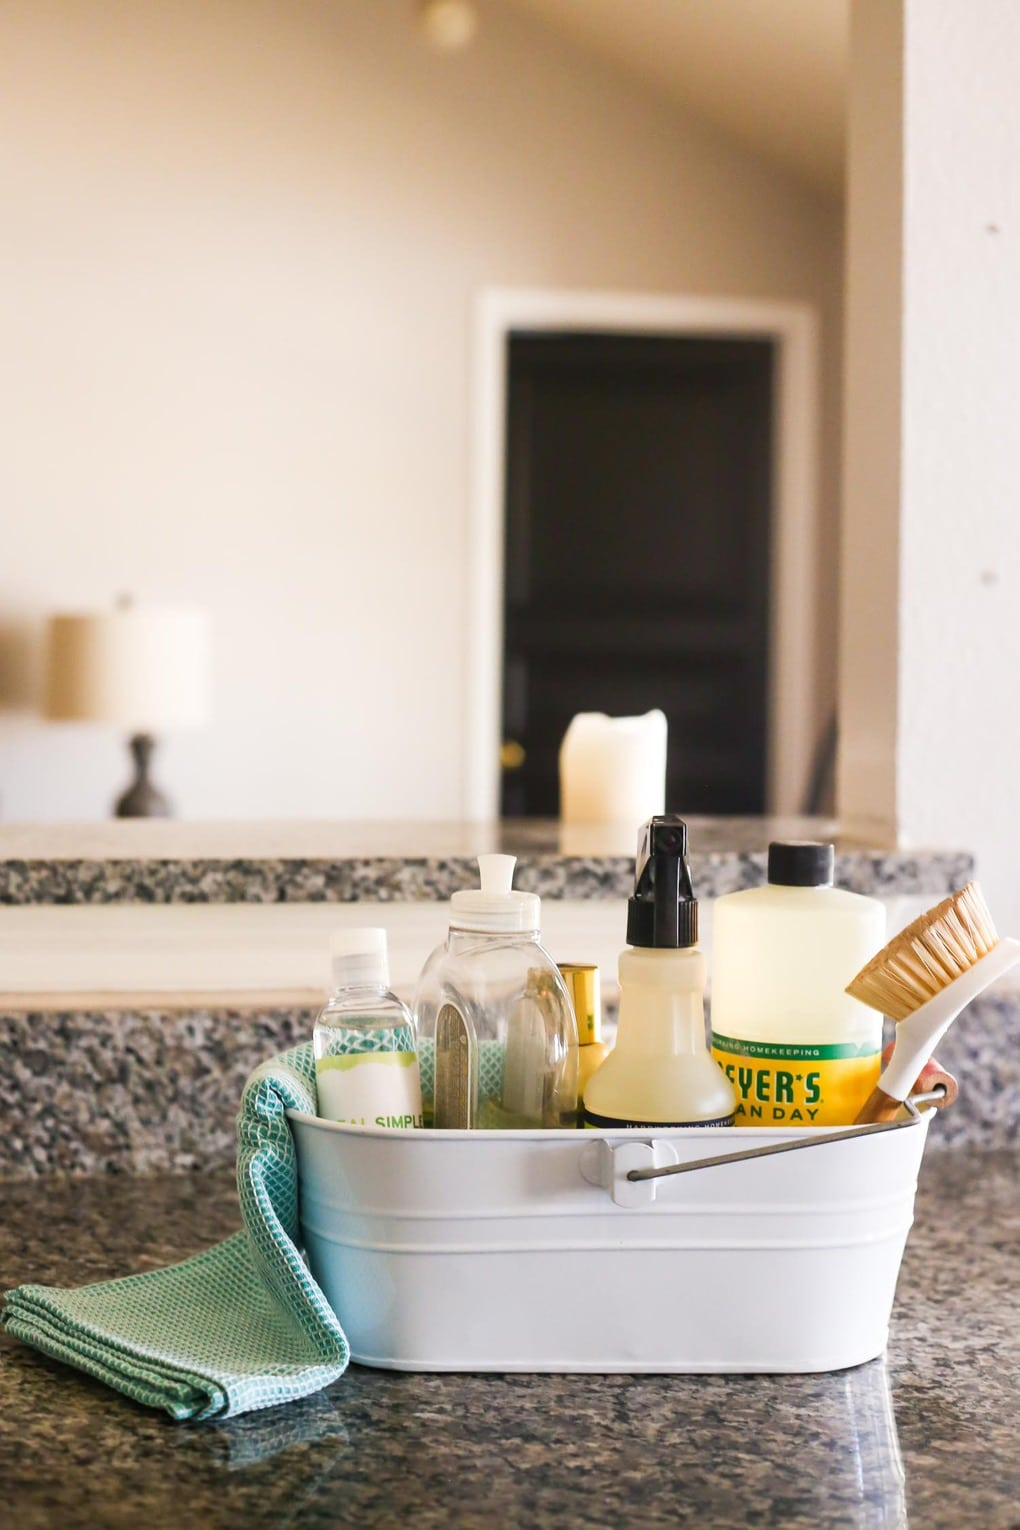 Tips for a small but organized kitchen